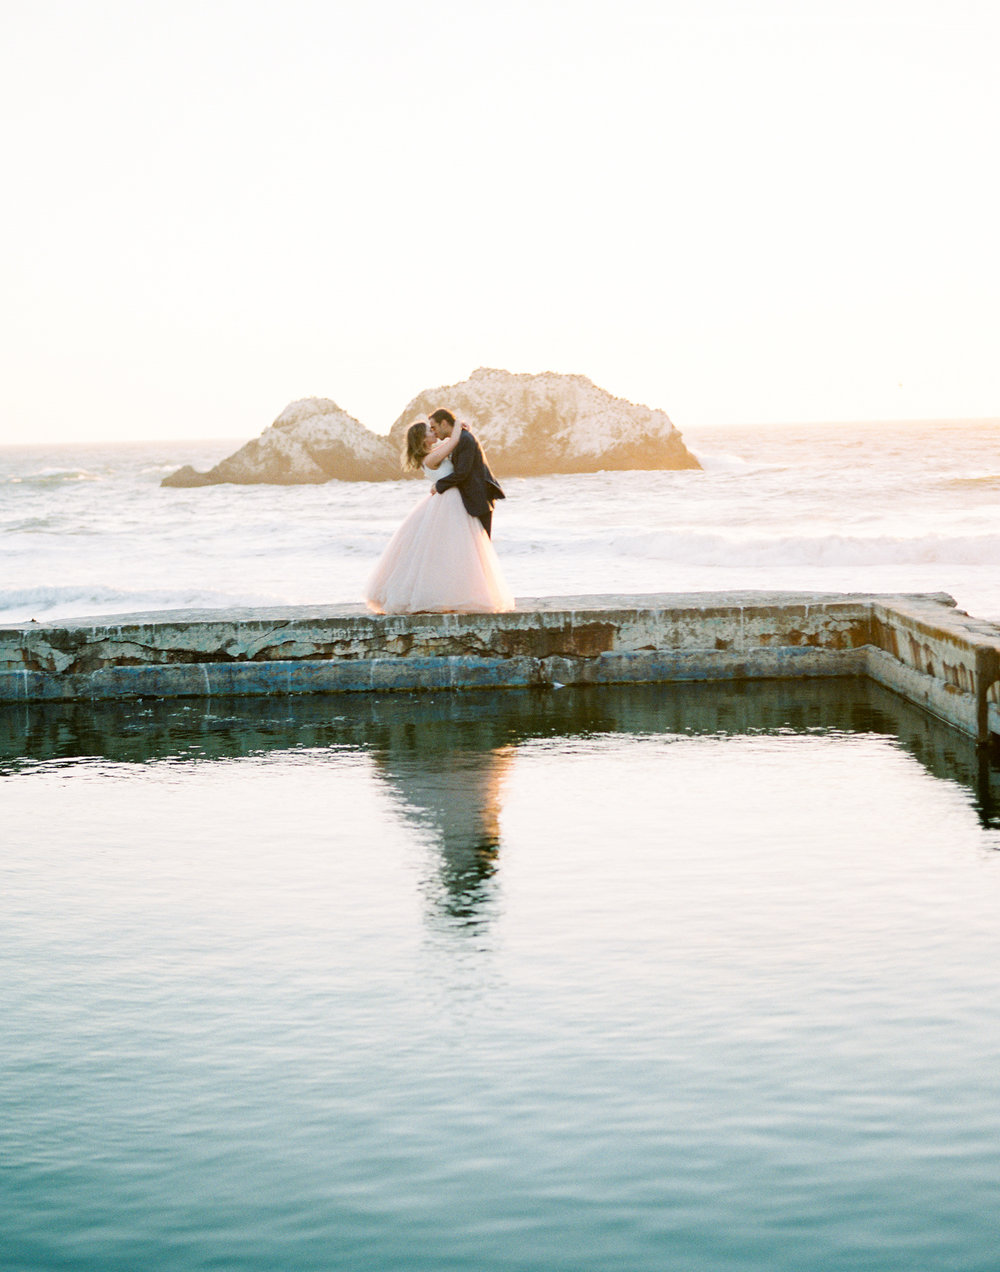 San Francisco Wedding Photography, San Francisco Sutro Baths, Engagement Session, Joy Wed, Elopement Photographer